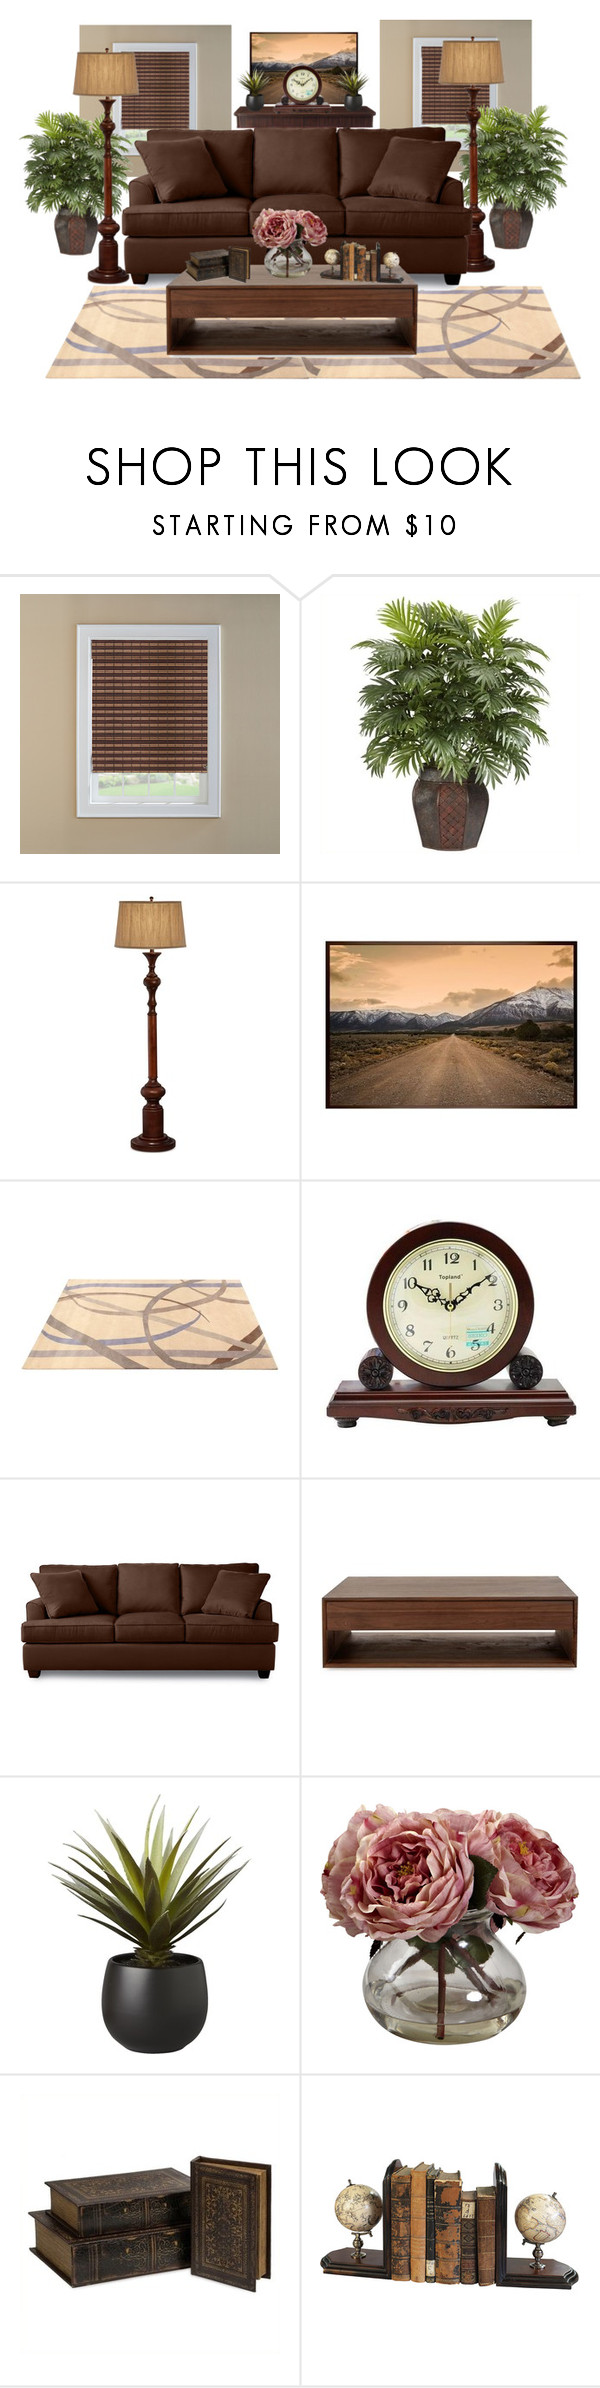 """home decor"" by armsdani ❤ liked on Polyvore featuring interior, interiors, interior design, home, home decor, interior decorating, Nearly Natural, Pacific Coast, Pottery Barn and ABC Italia"